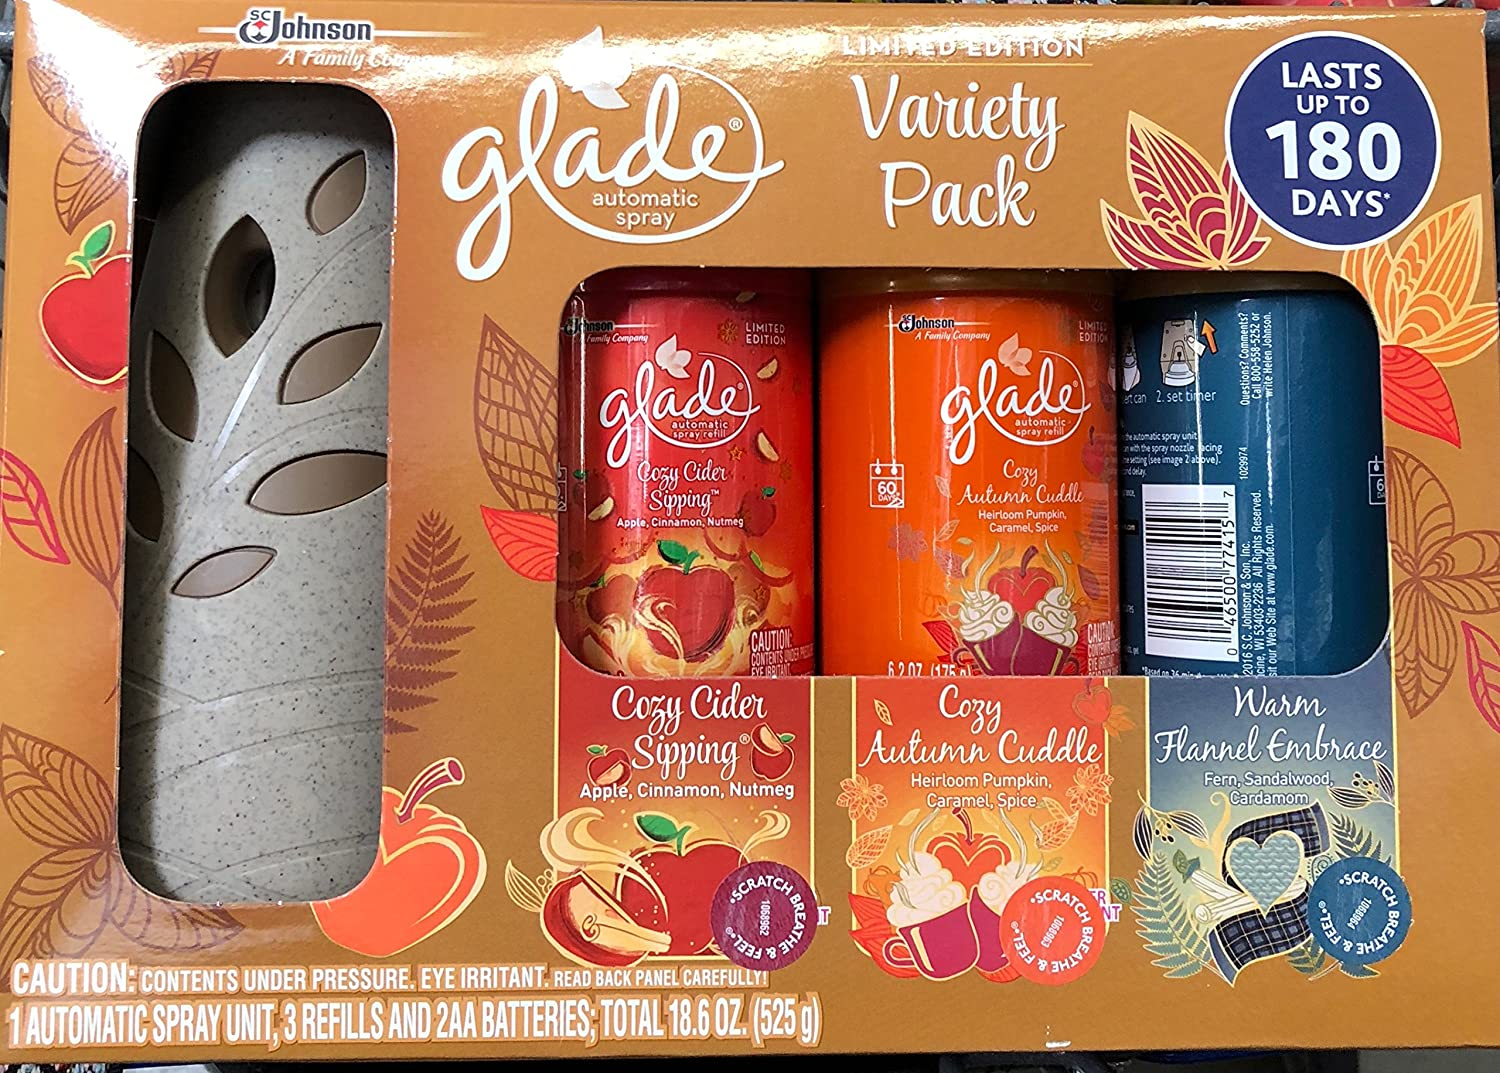 Glade Automatic Spray Starter + Variety Pack 3 Refills, Limited Edition